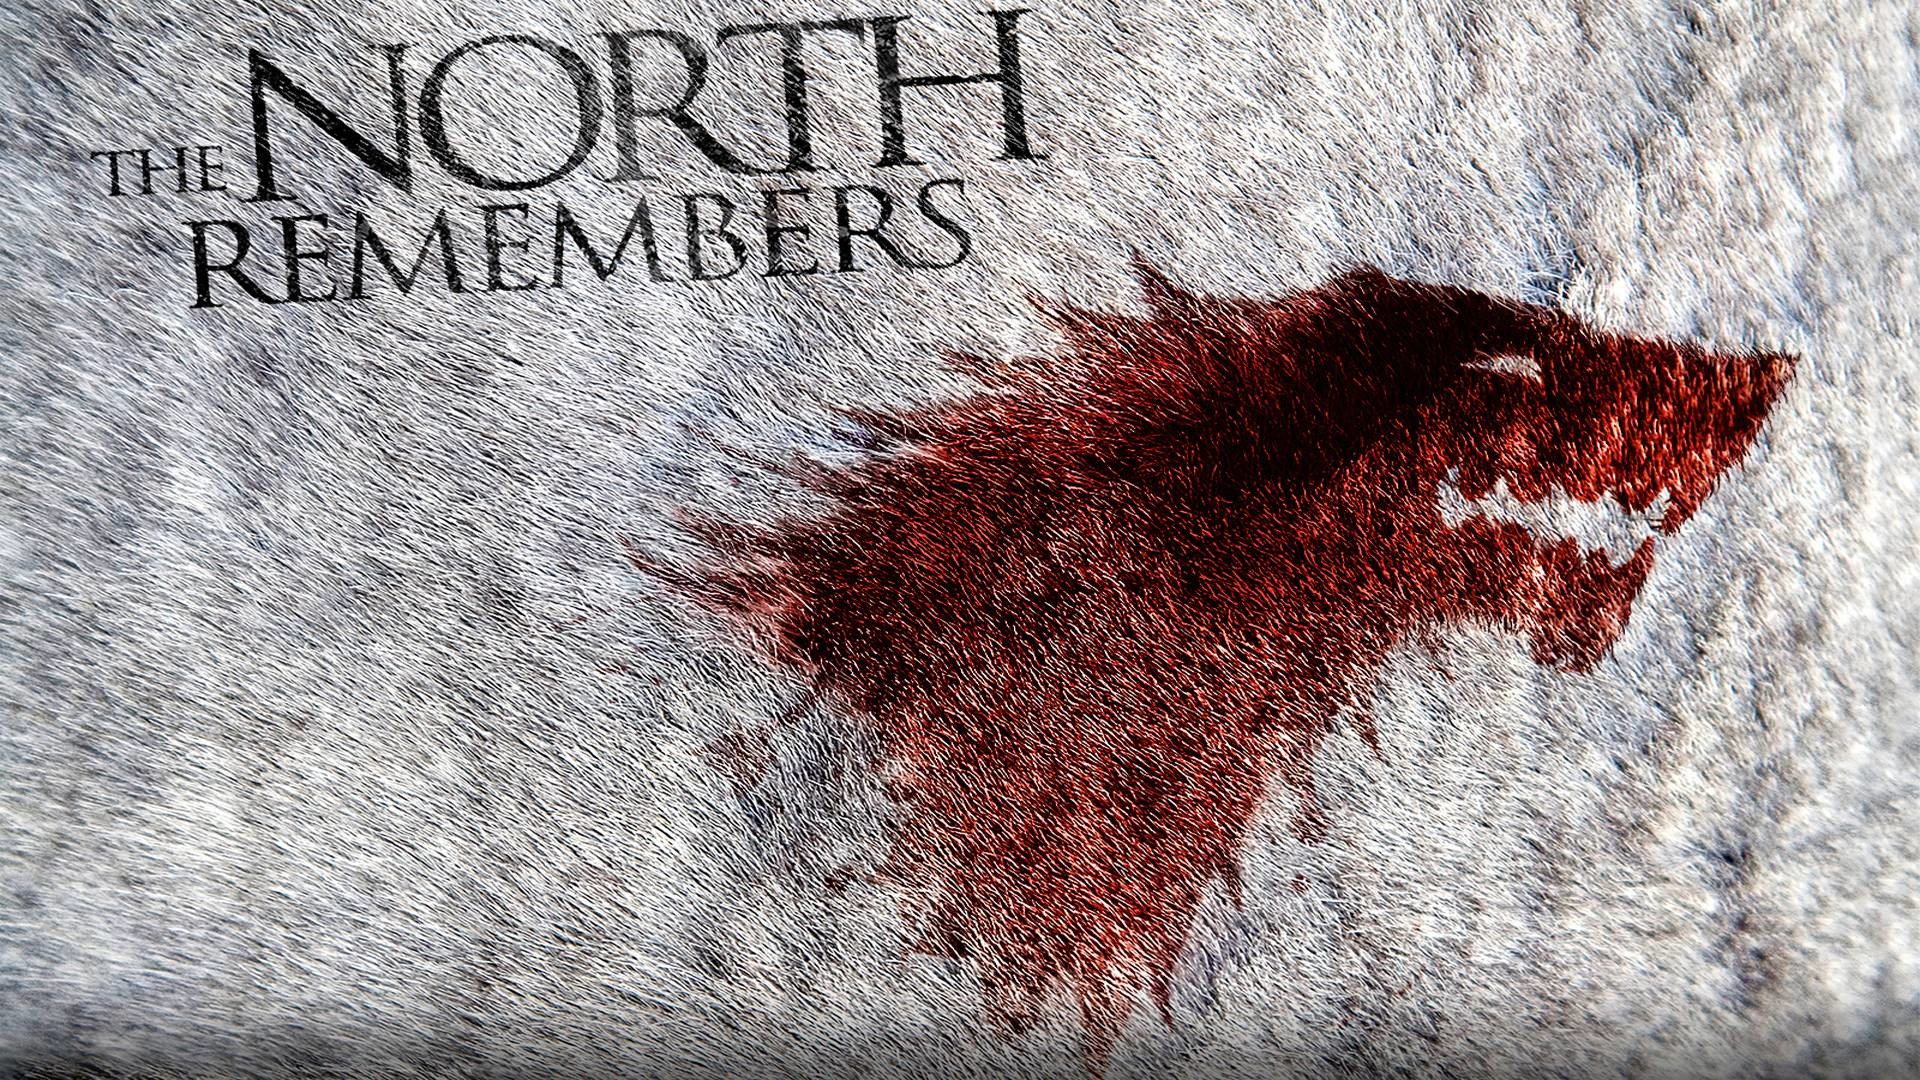 The North Remembers Wallpaper 73 images 1920x1080